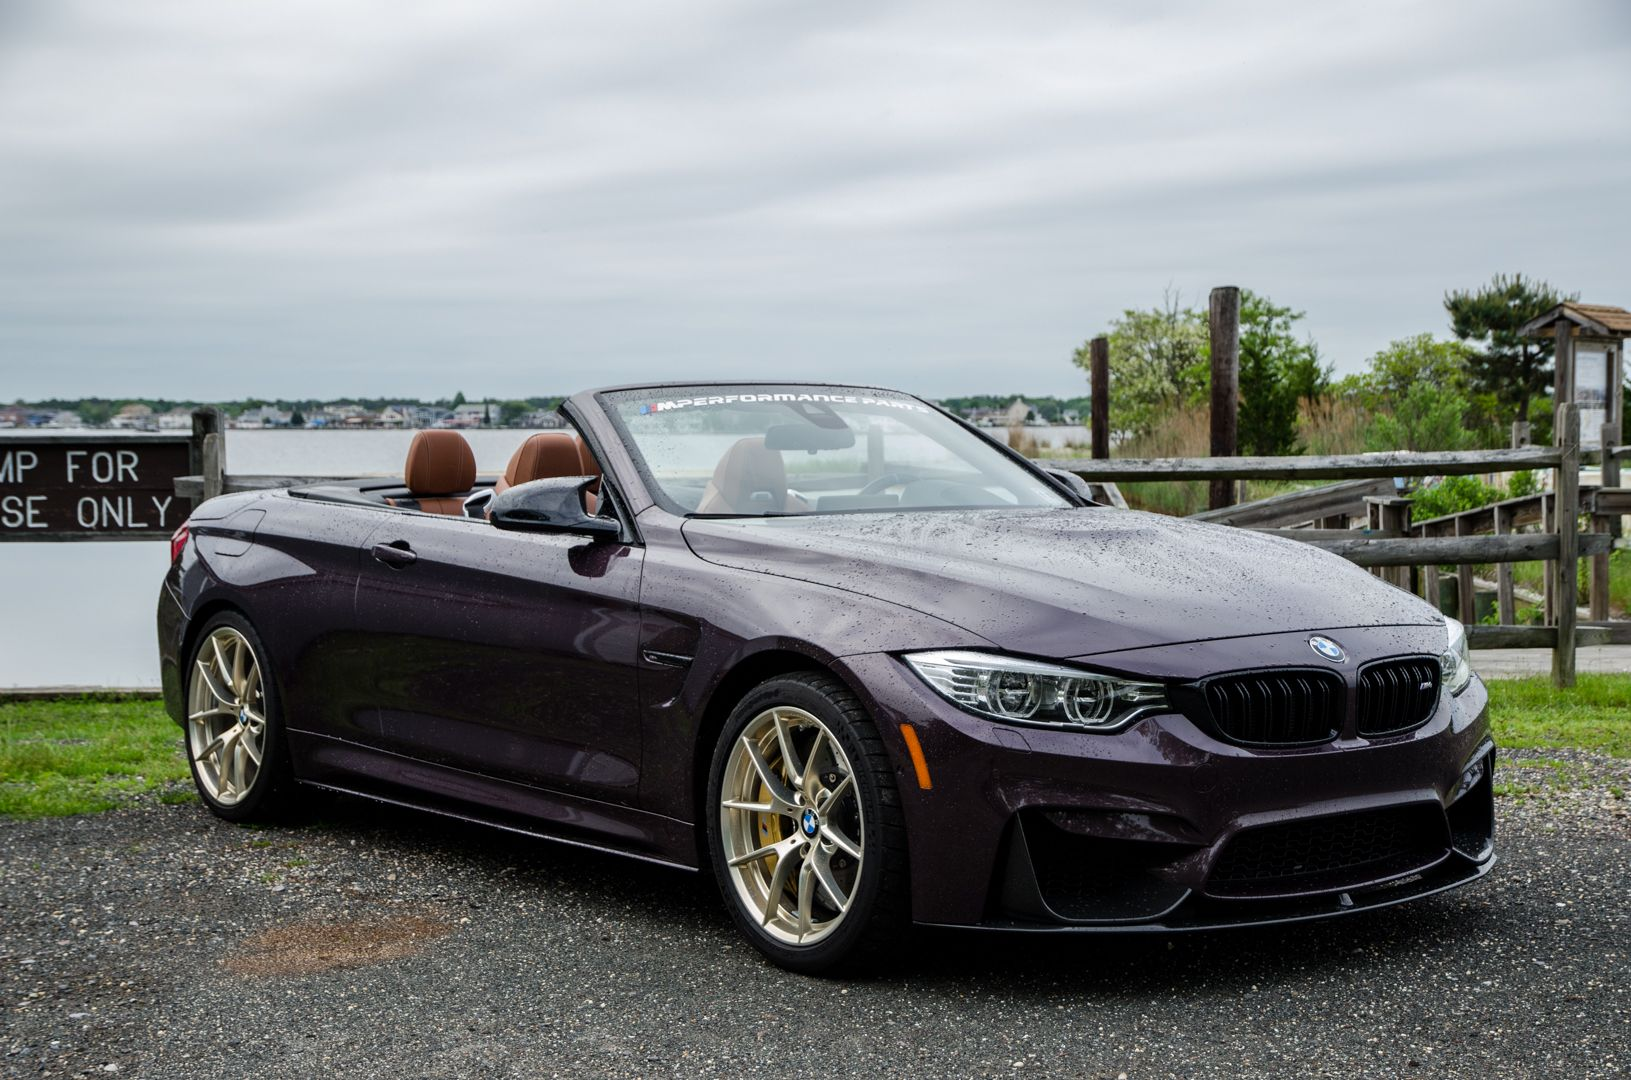 Bmw M4 Convertible Seen Testing With Roof Up Bmwfiend Com In 2020 Bmw M4 Bmw Bmw M4 Coupe